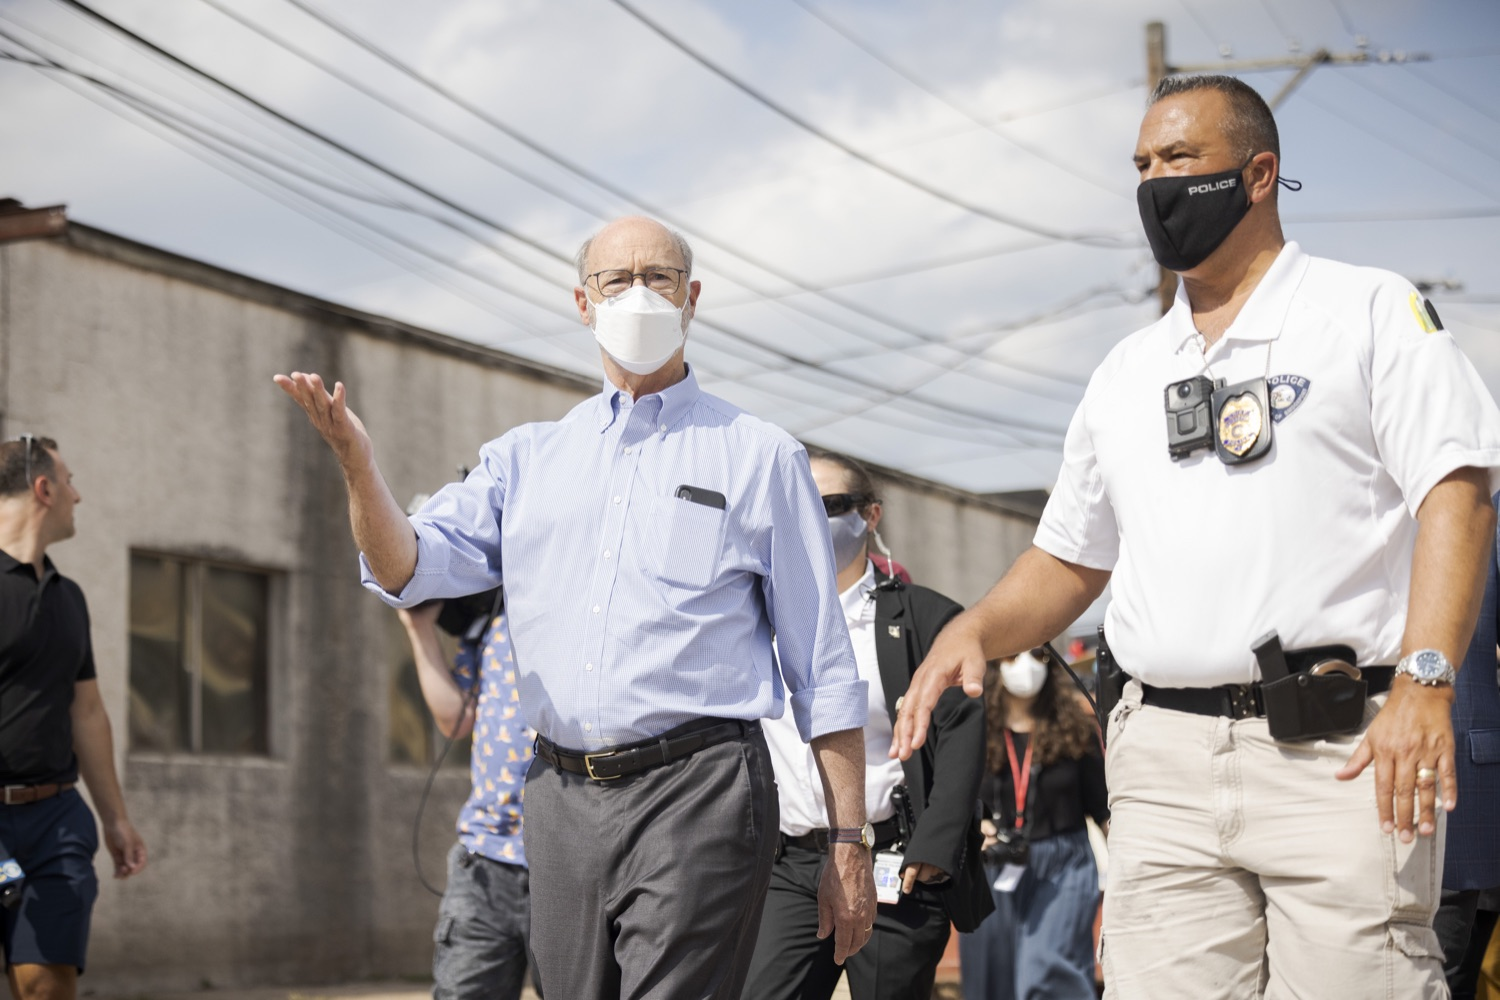 """<a href=""""https://filesource.wostreaming.net/commonwealthofpa/photo/19109_gov_stormDamage_dz_015.jpg"""" target=""""_blank"""">⇣Download Photo<br></a>Pennsylvania Governor Tom Wolf touring storm damage with Chief Todd J. Bereda,  Chief of Police, Emergency Management Coordinator Bridgeport PA.   Governor Wolf visited the Borough of Bridgeport to tour some of the areas affected by the remnants of Ida. The governor, joined by local officials, viewed and discussed the impact to damaged areas, including businesses, homes and infrastructure. Bridgeport, PA - September 08, 2021"""